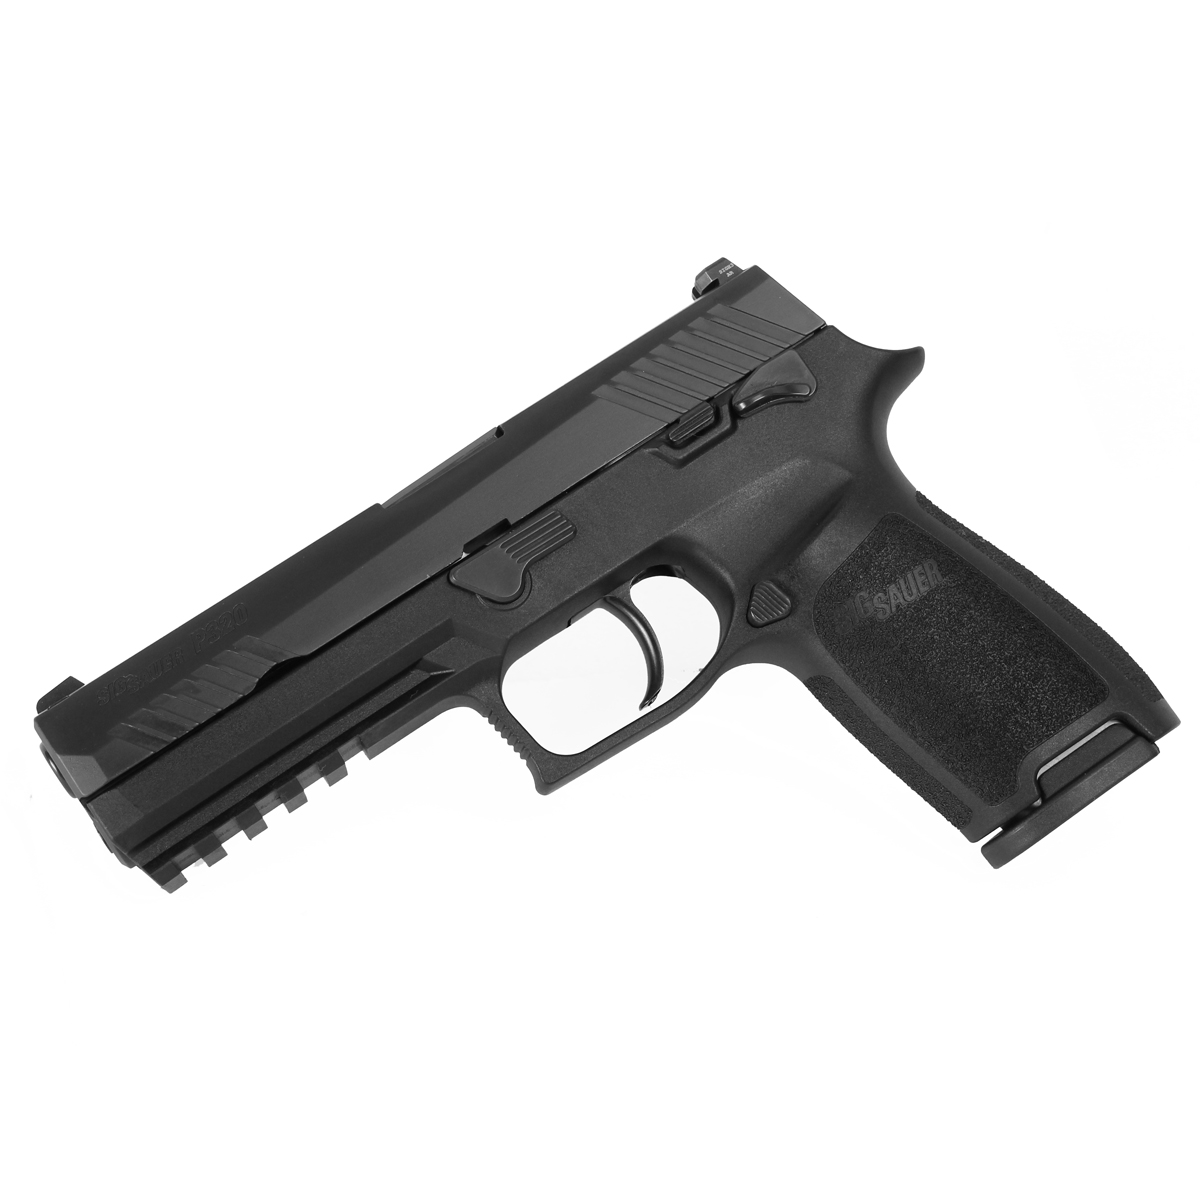 Sig Sauer P320 Full Size, 9mm, Nitron, SigLite Night Sights, Manual Safety